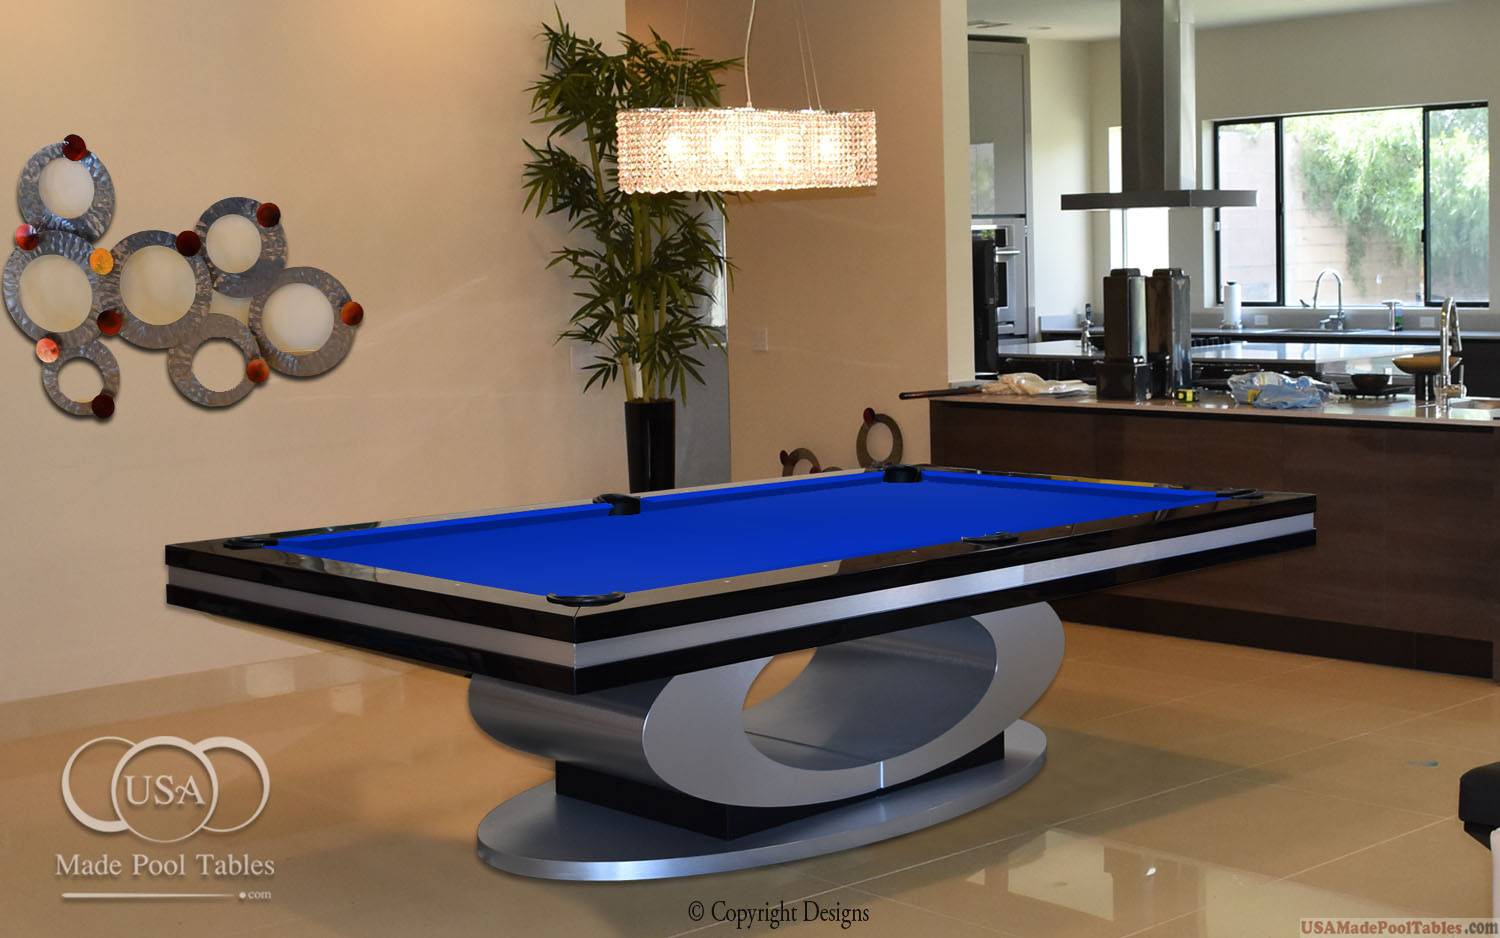 OVAL CUSTOM POOL TABLE BLACK